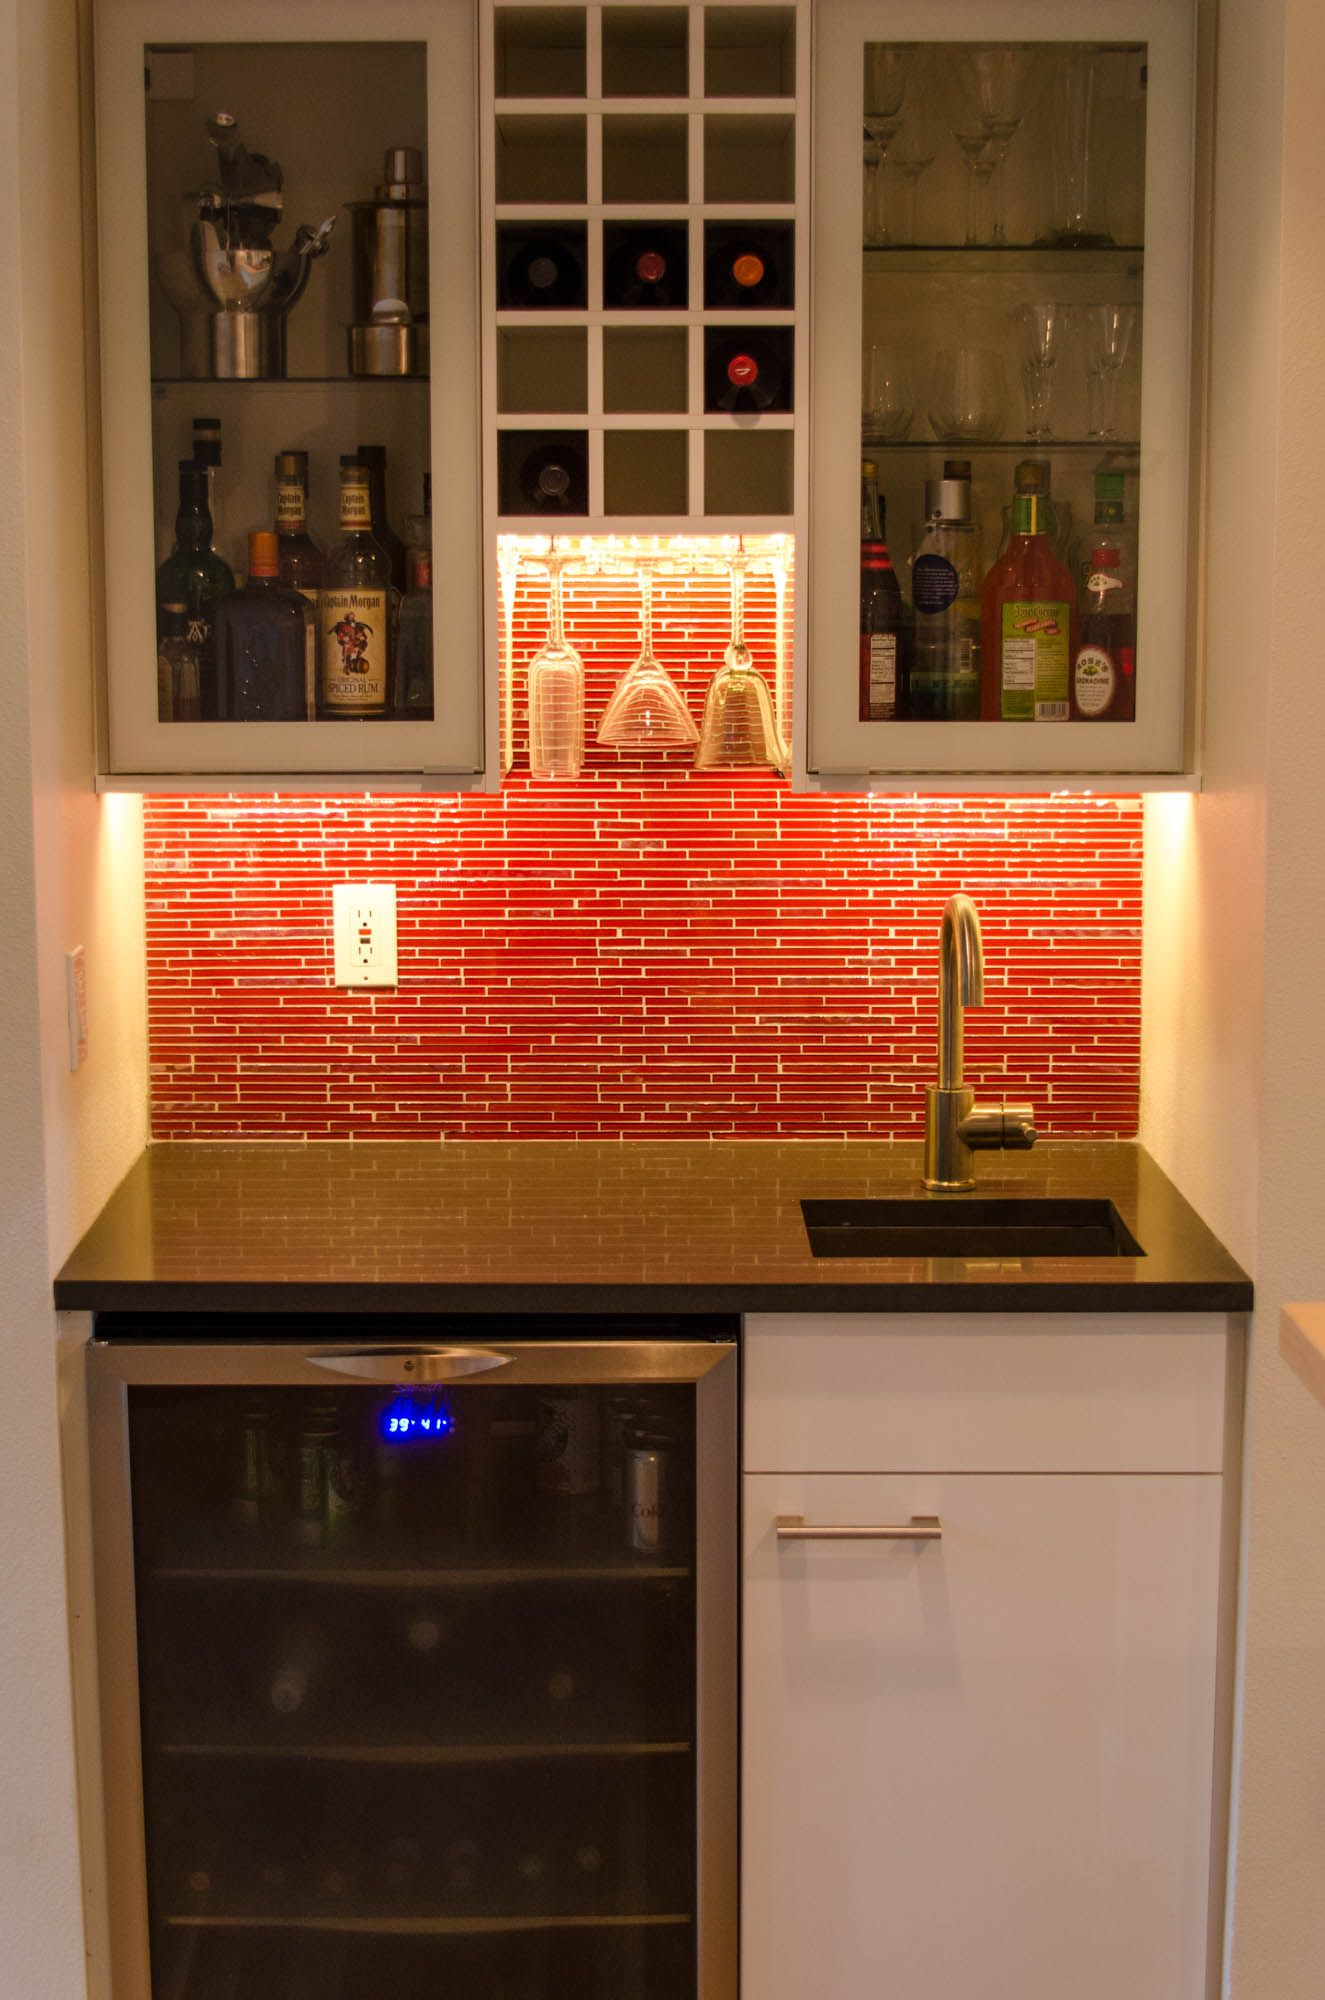 Ikea Wet Bar Cabinets With Sink In Small Kitche Red Backsplash Idea Wet Bar Designs